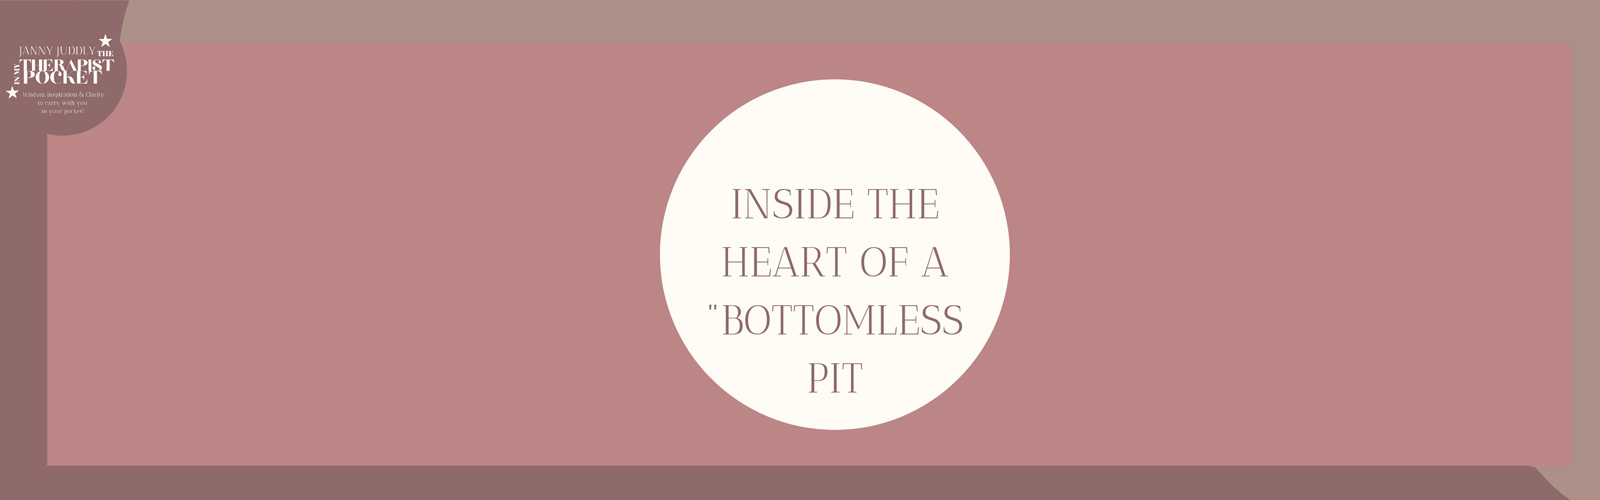 INSIDE THE HEART OF A 'BOTTOMLESS PIT'